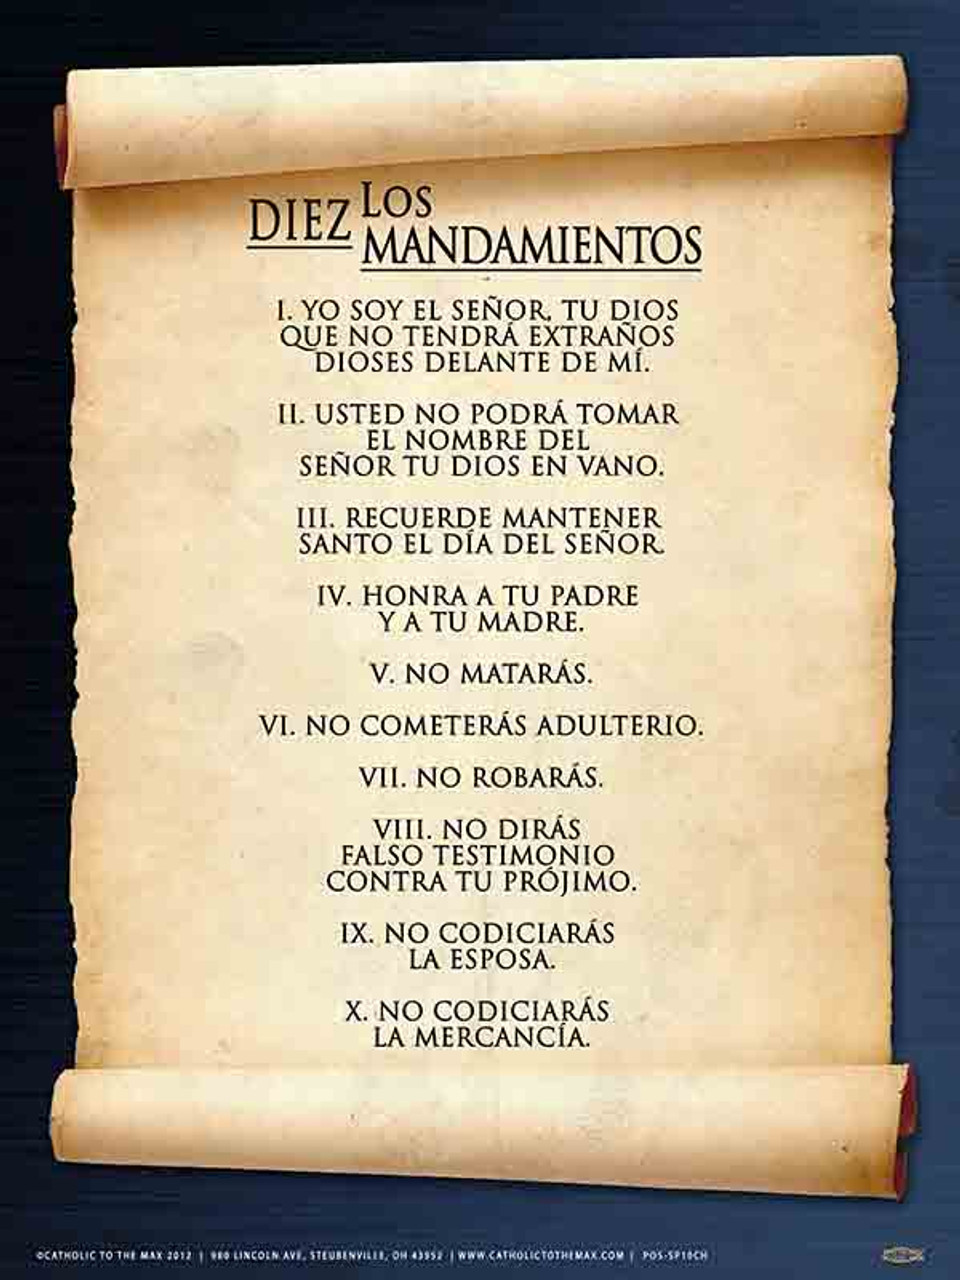 photo about Catholic Ten Commandments Printable referred to as Spanish 10 Commandments Poster